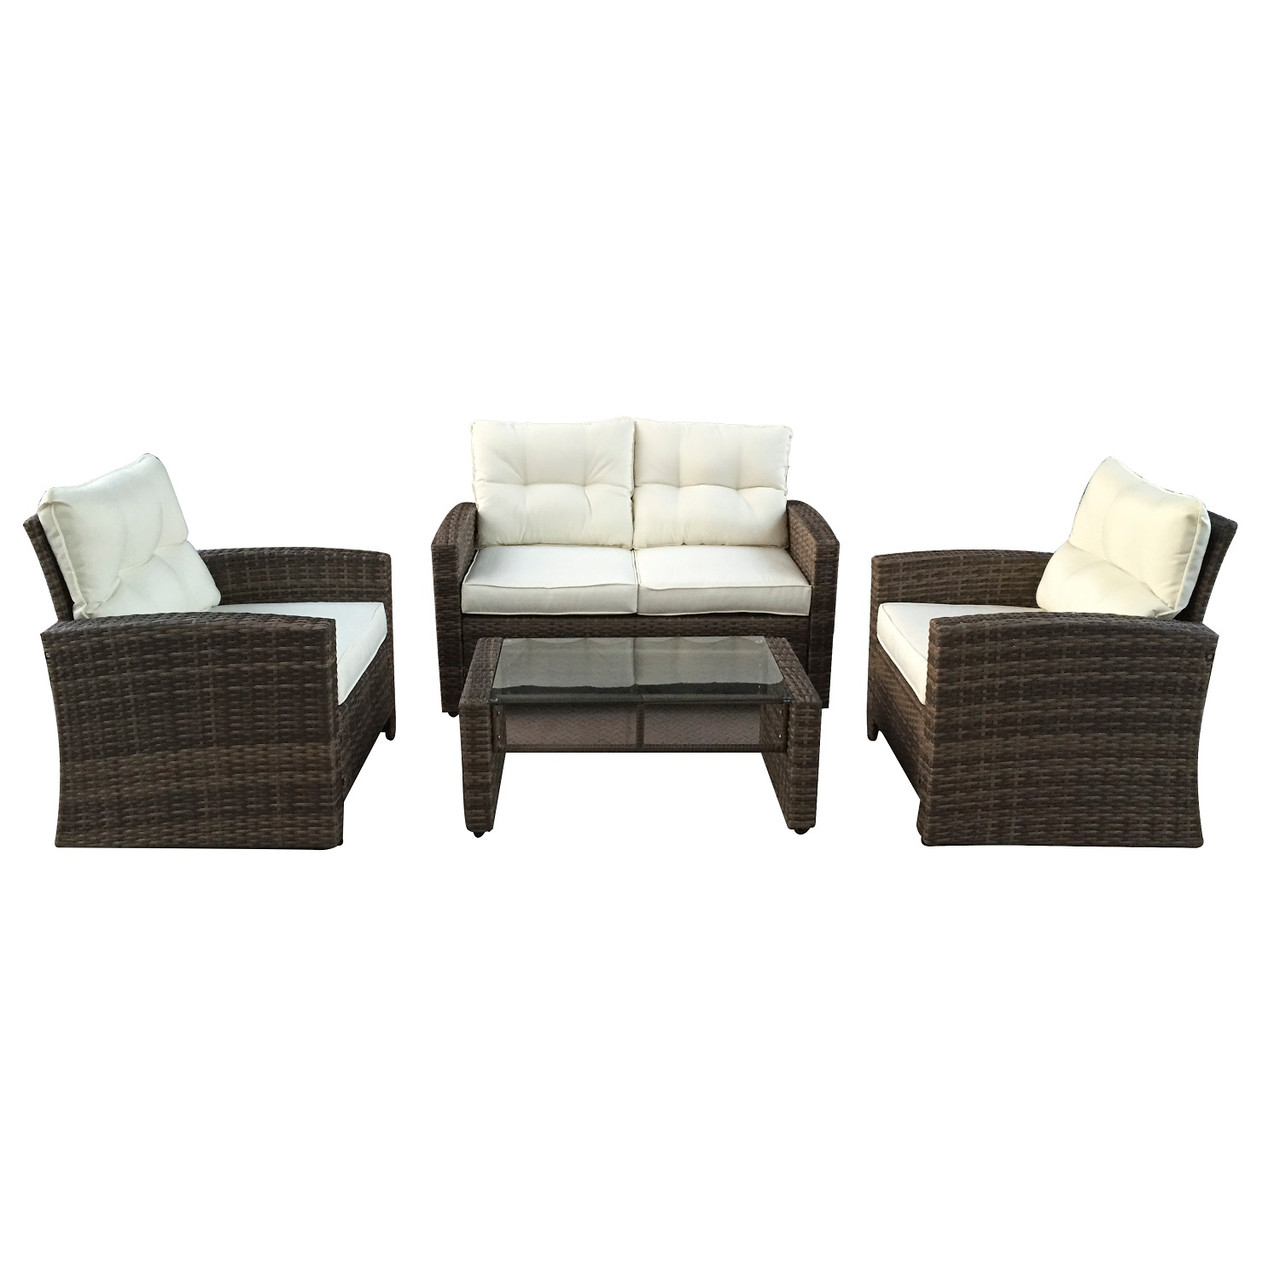 4pc brown and beige two tone rattan outdoor patio furniture set with cushions 50